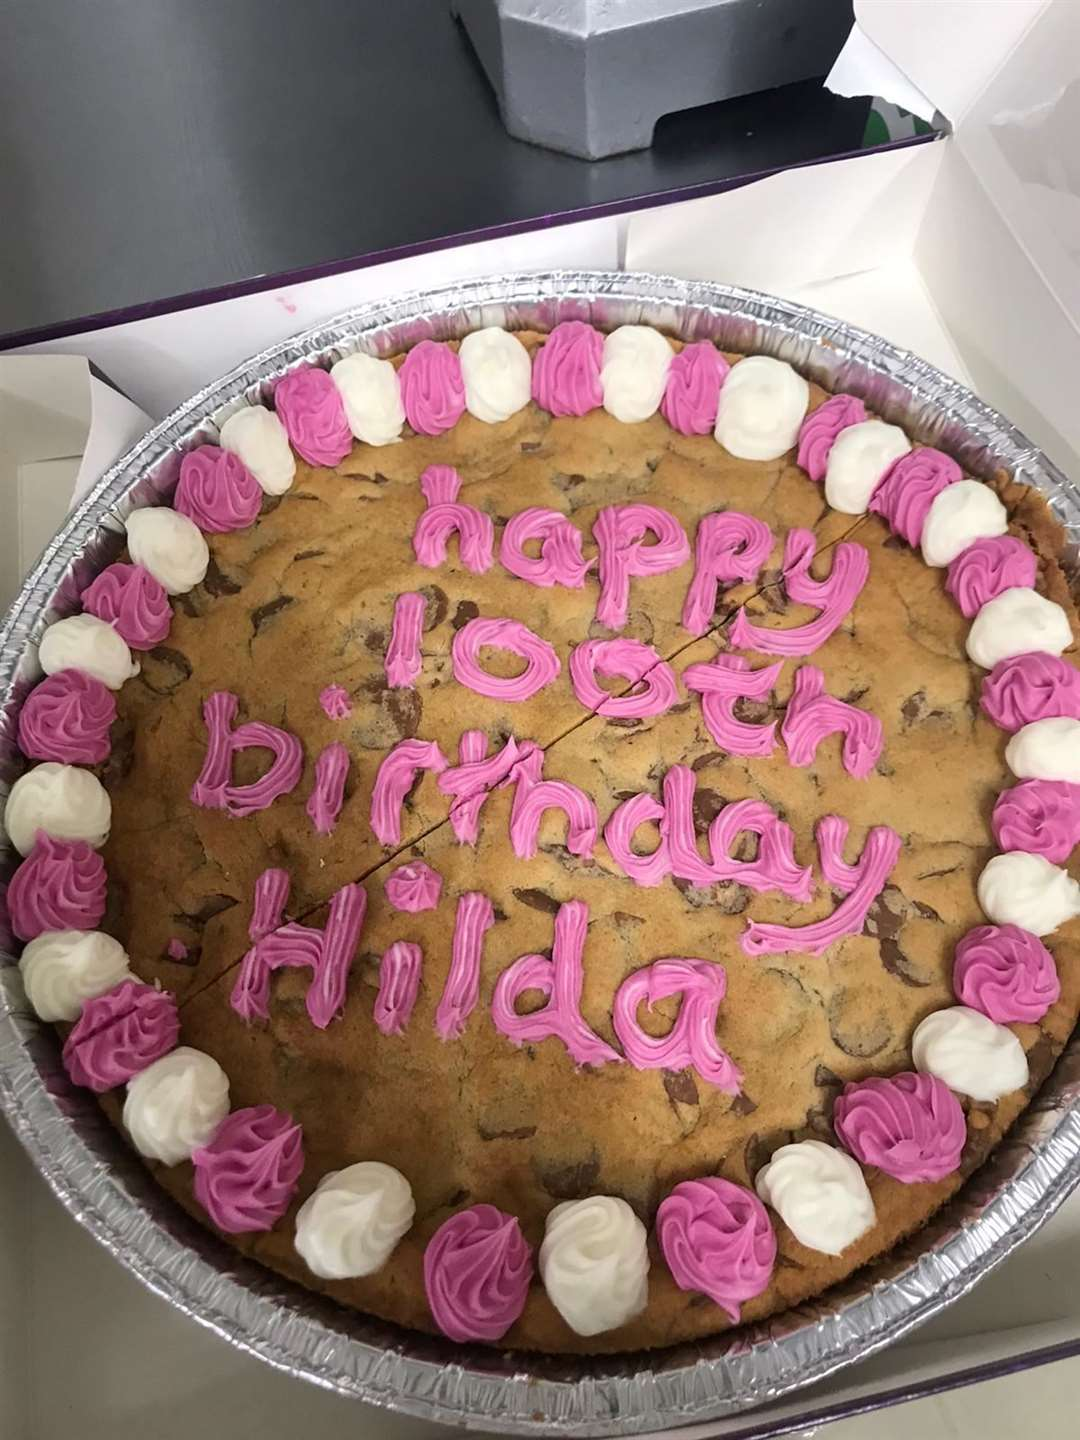 Hilda Wollaston's birthday cookie from Morrison's (44787362)